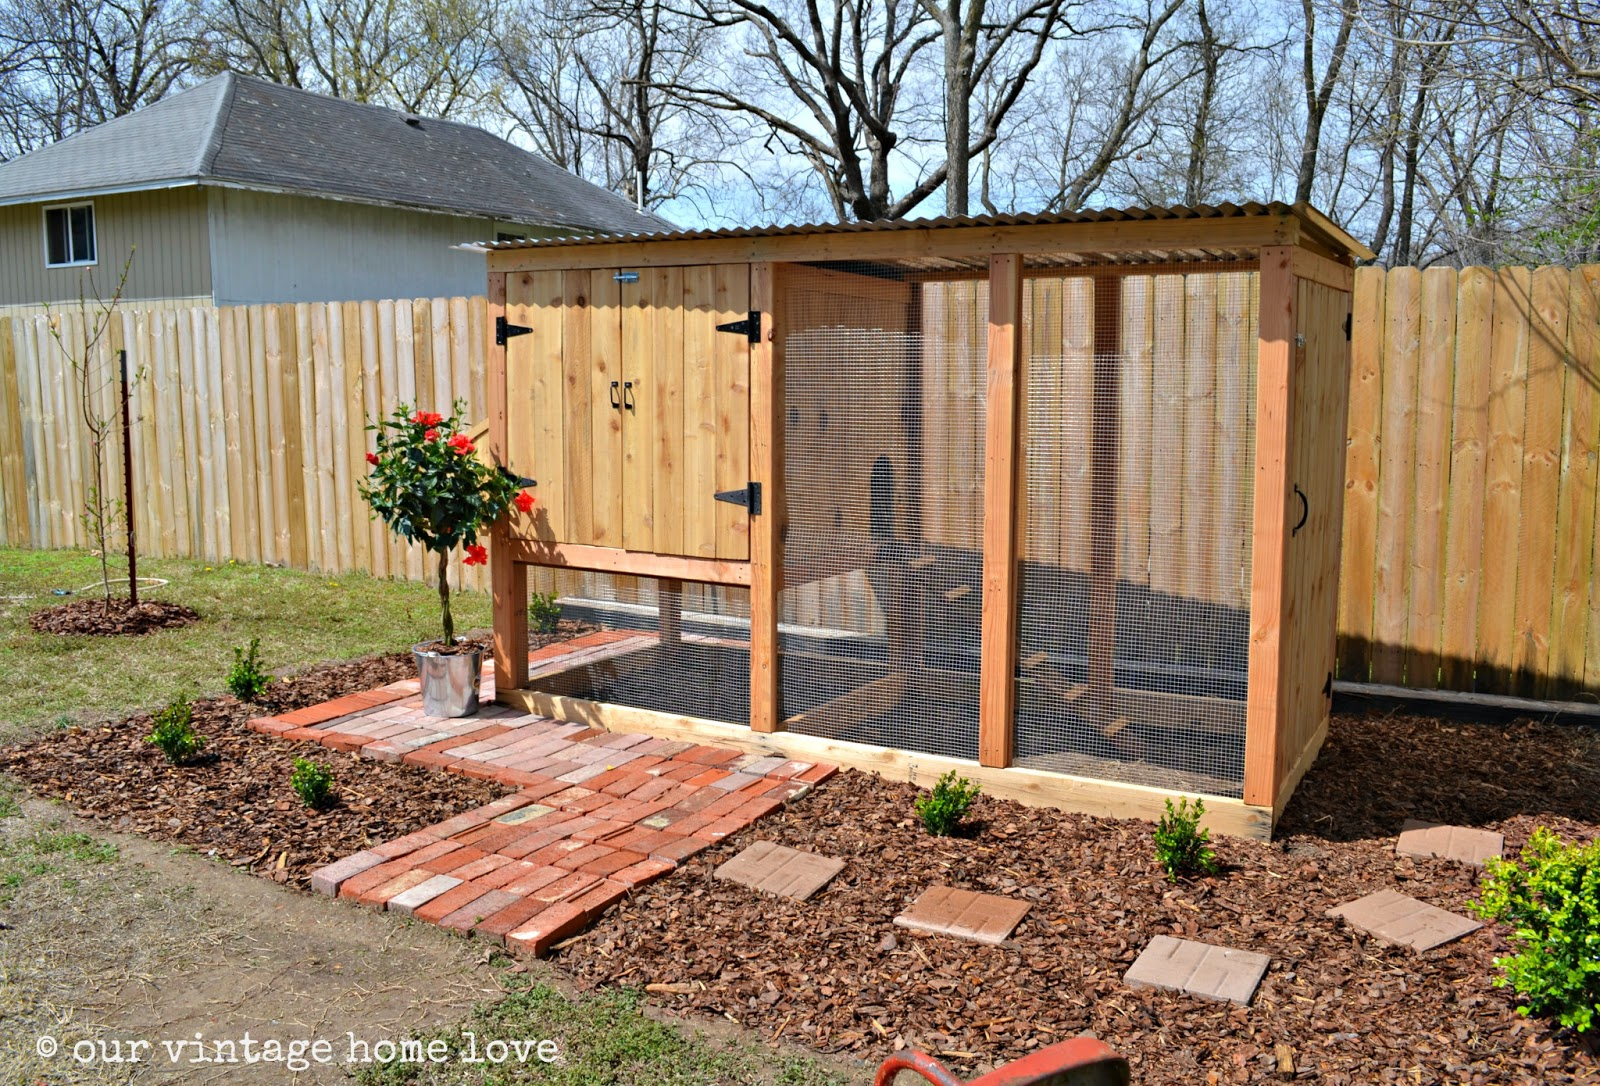 Vintage home love our new coop for Cute chicken coop ideas